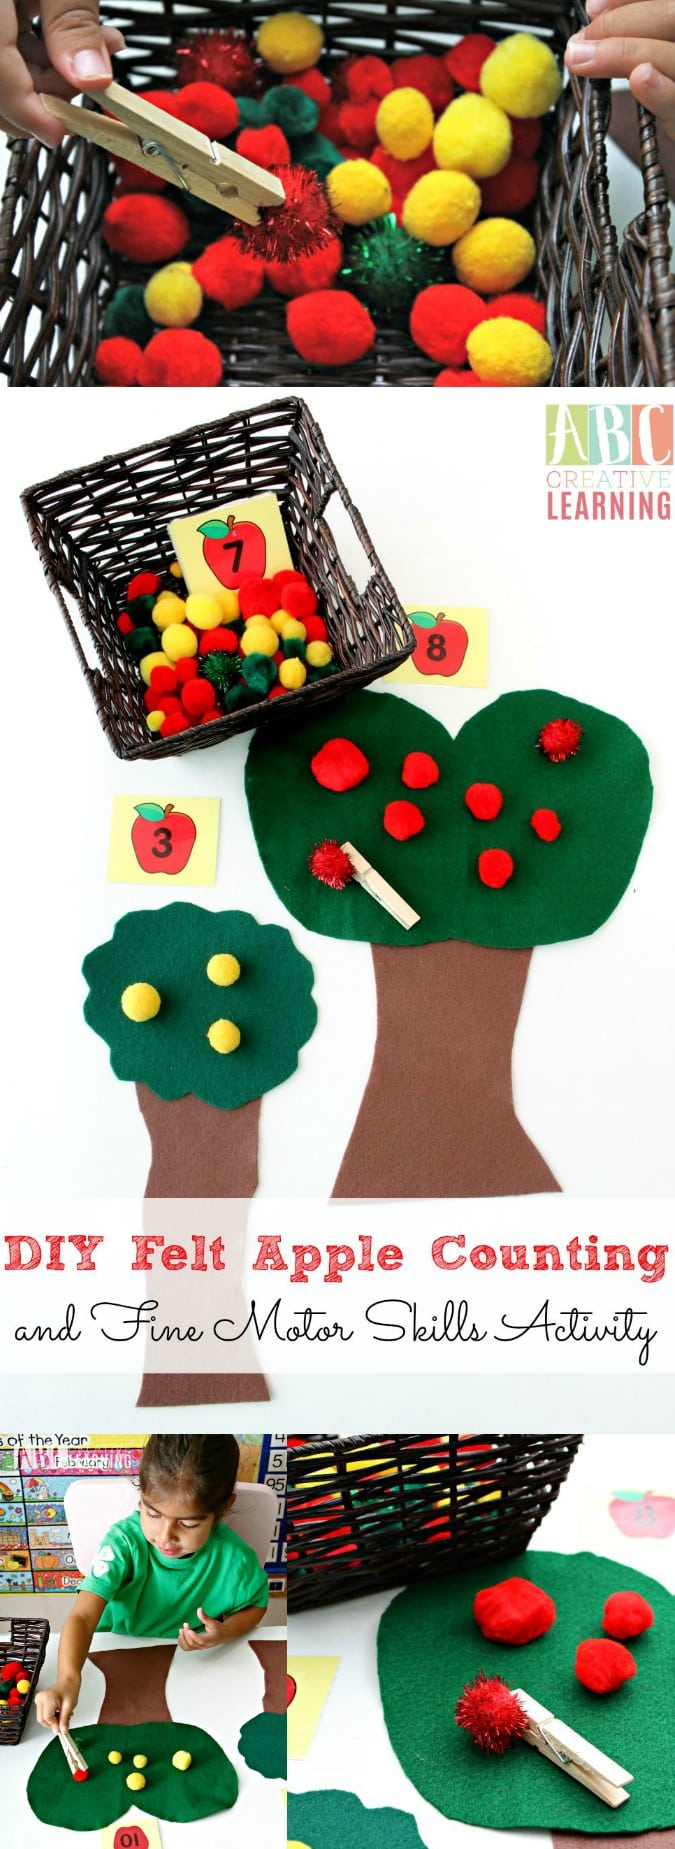 Apple Counting and Fine Motor Skills Activity